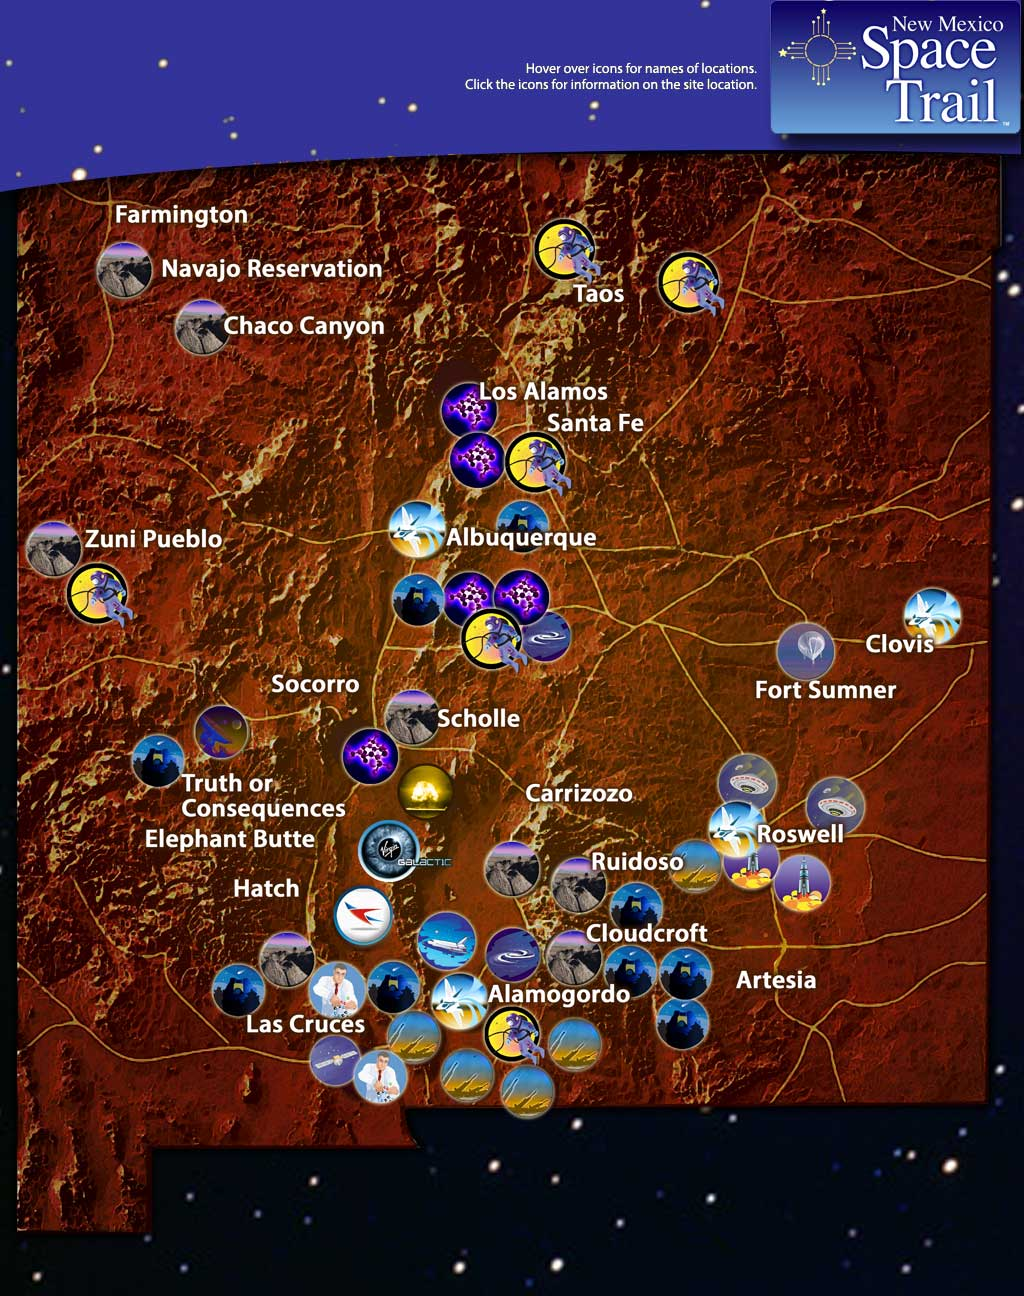 Space Trail Map - Interactive space map